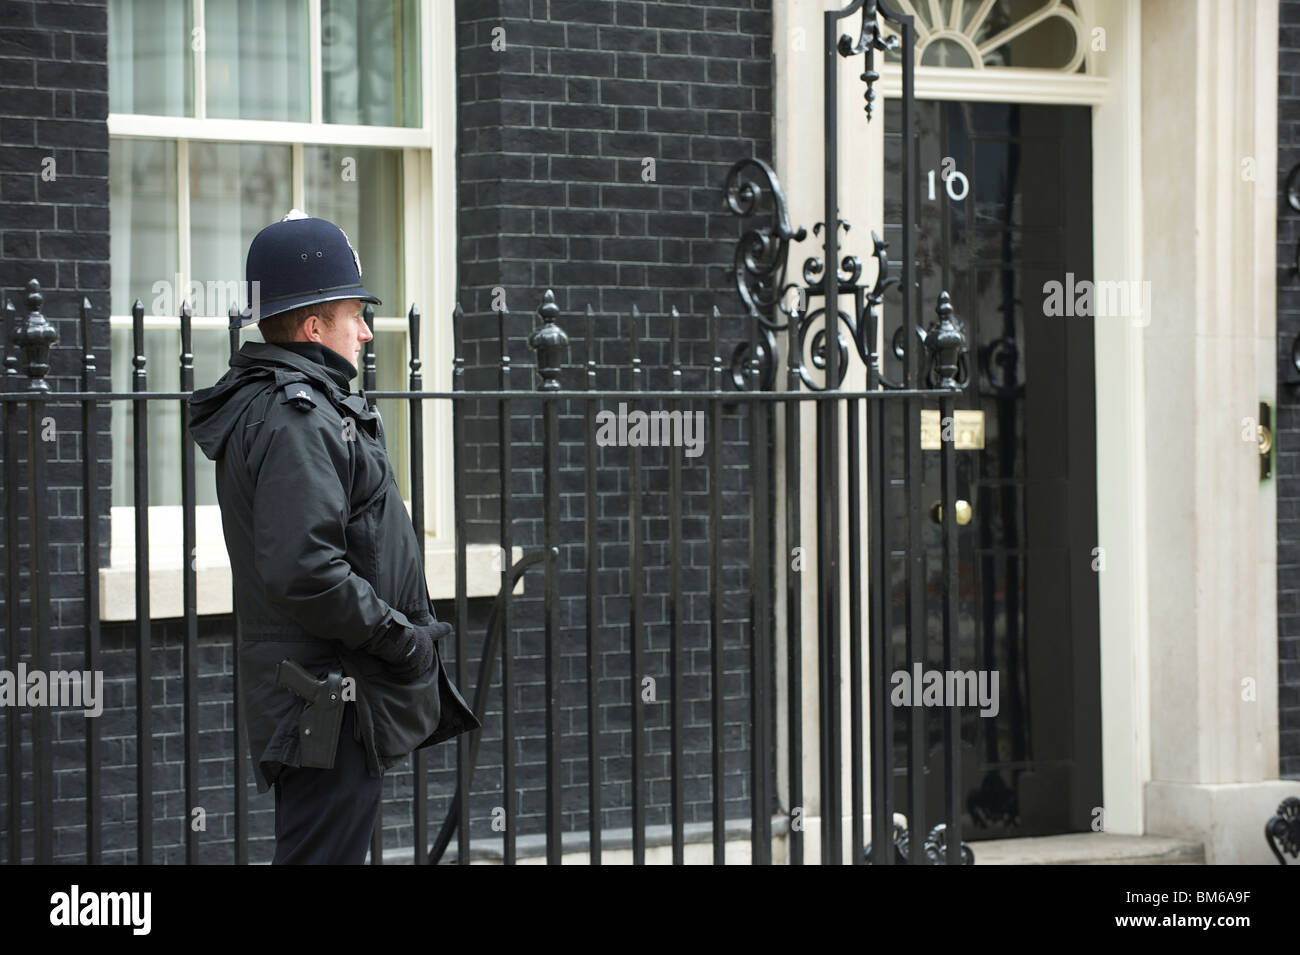 10 Downing Street, London. The official residence of the British Prime Minister, here with a policeman or 'Bobby' - Stock Image